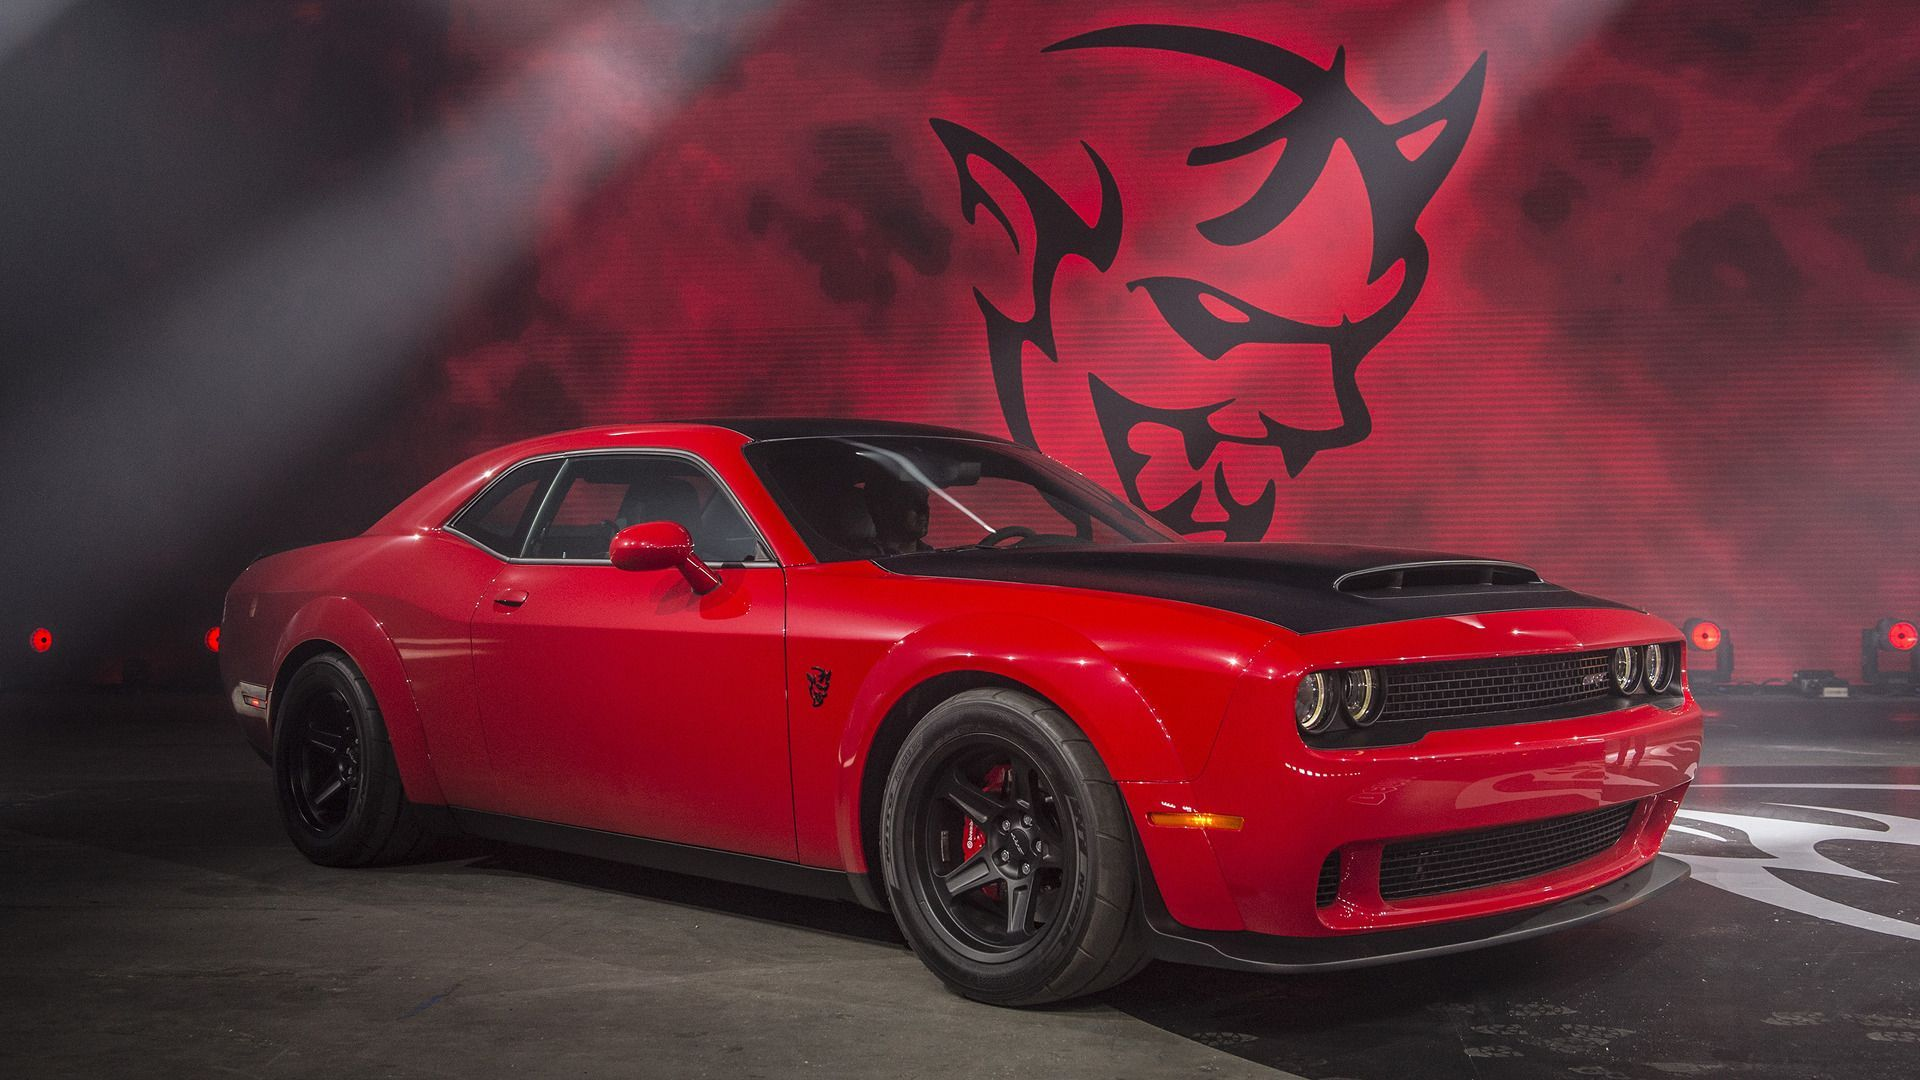 Dodge Hellcat Wallpapers Top Free Dodge Hellcat Backgrounds Wallpaperaccess